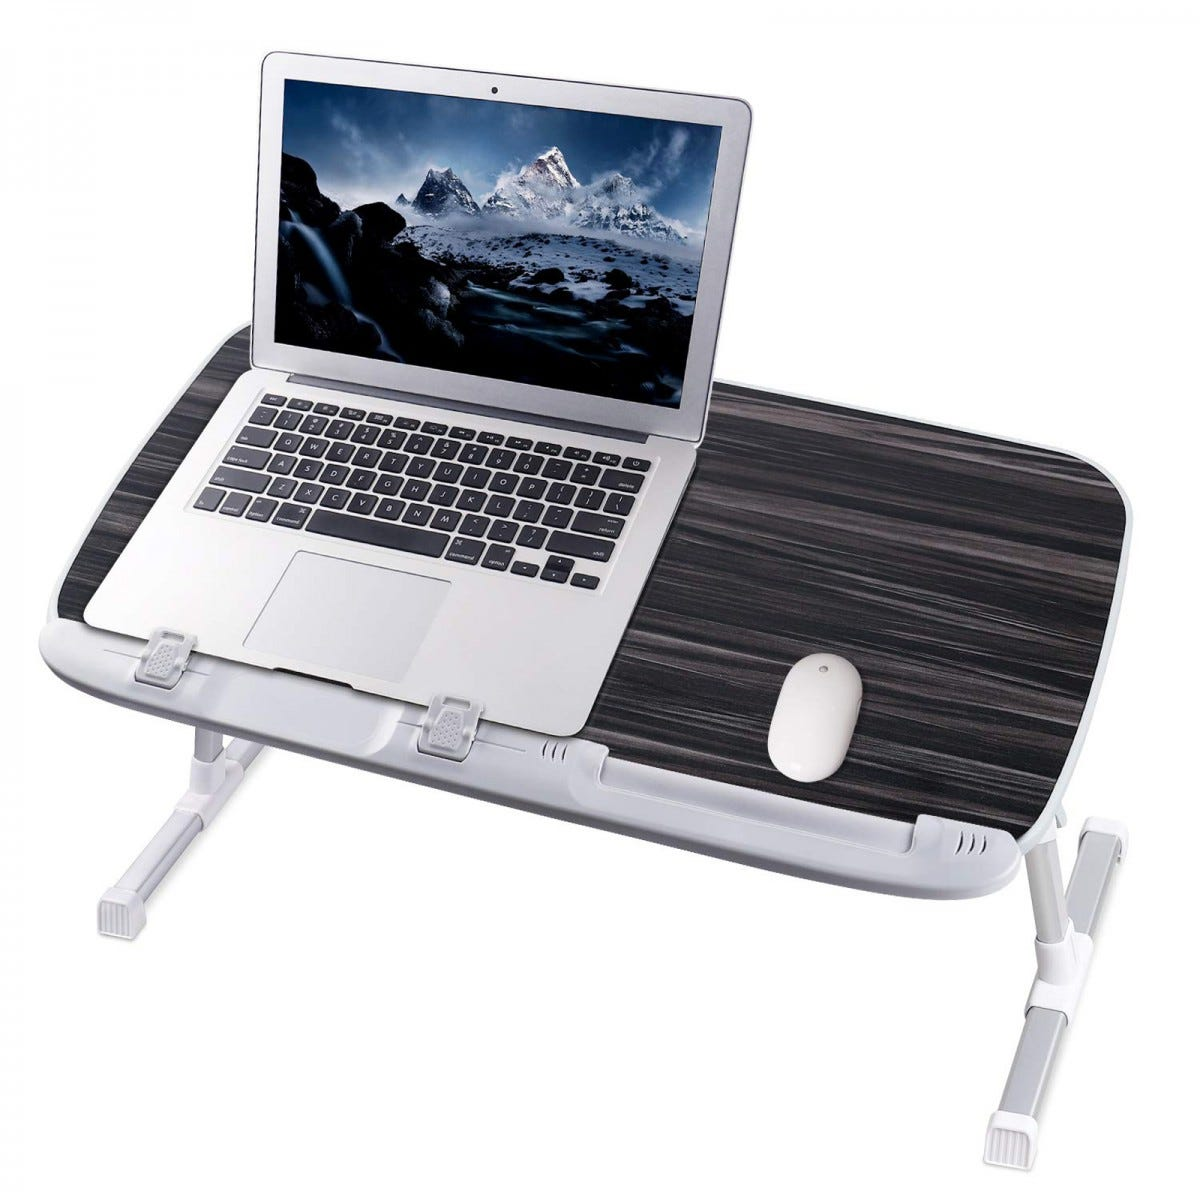 The NEARPOW Laptop Desk for Bed with an open laptop and mouse on it.